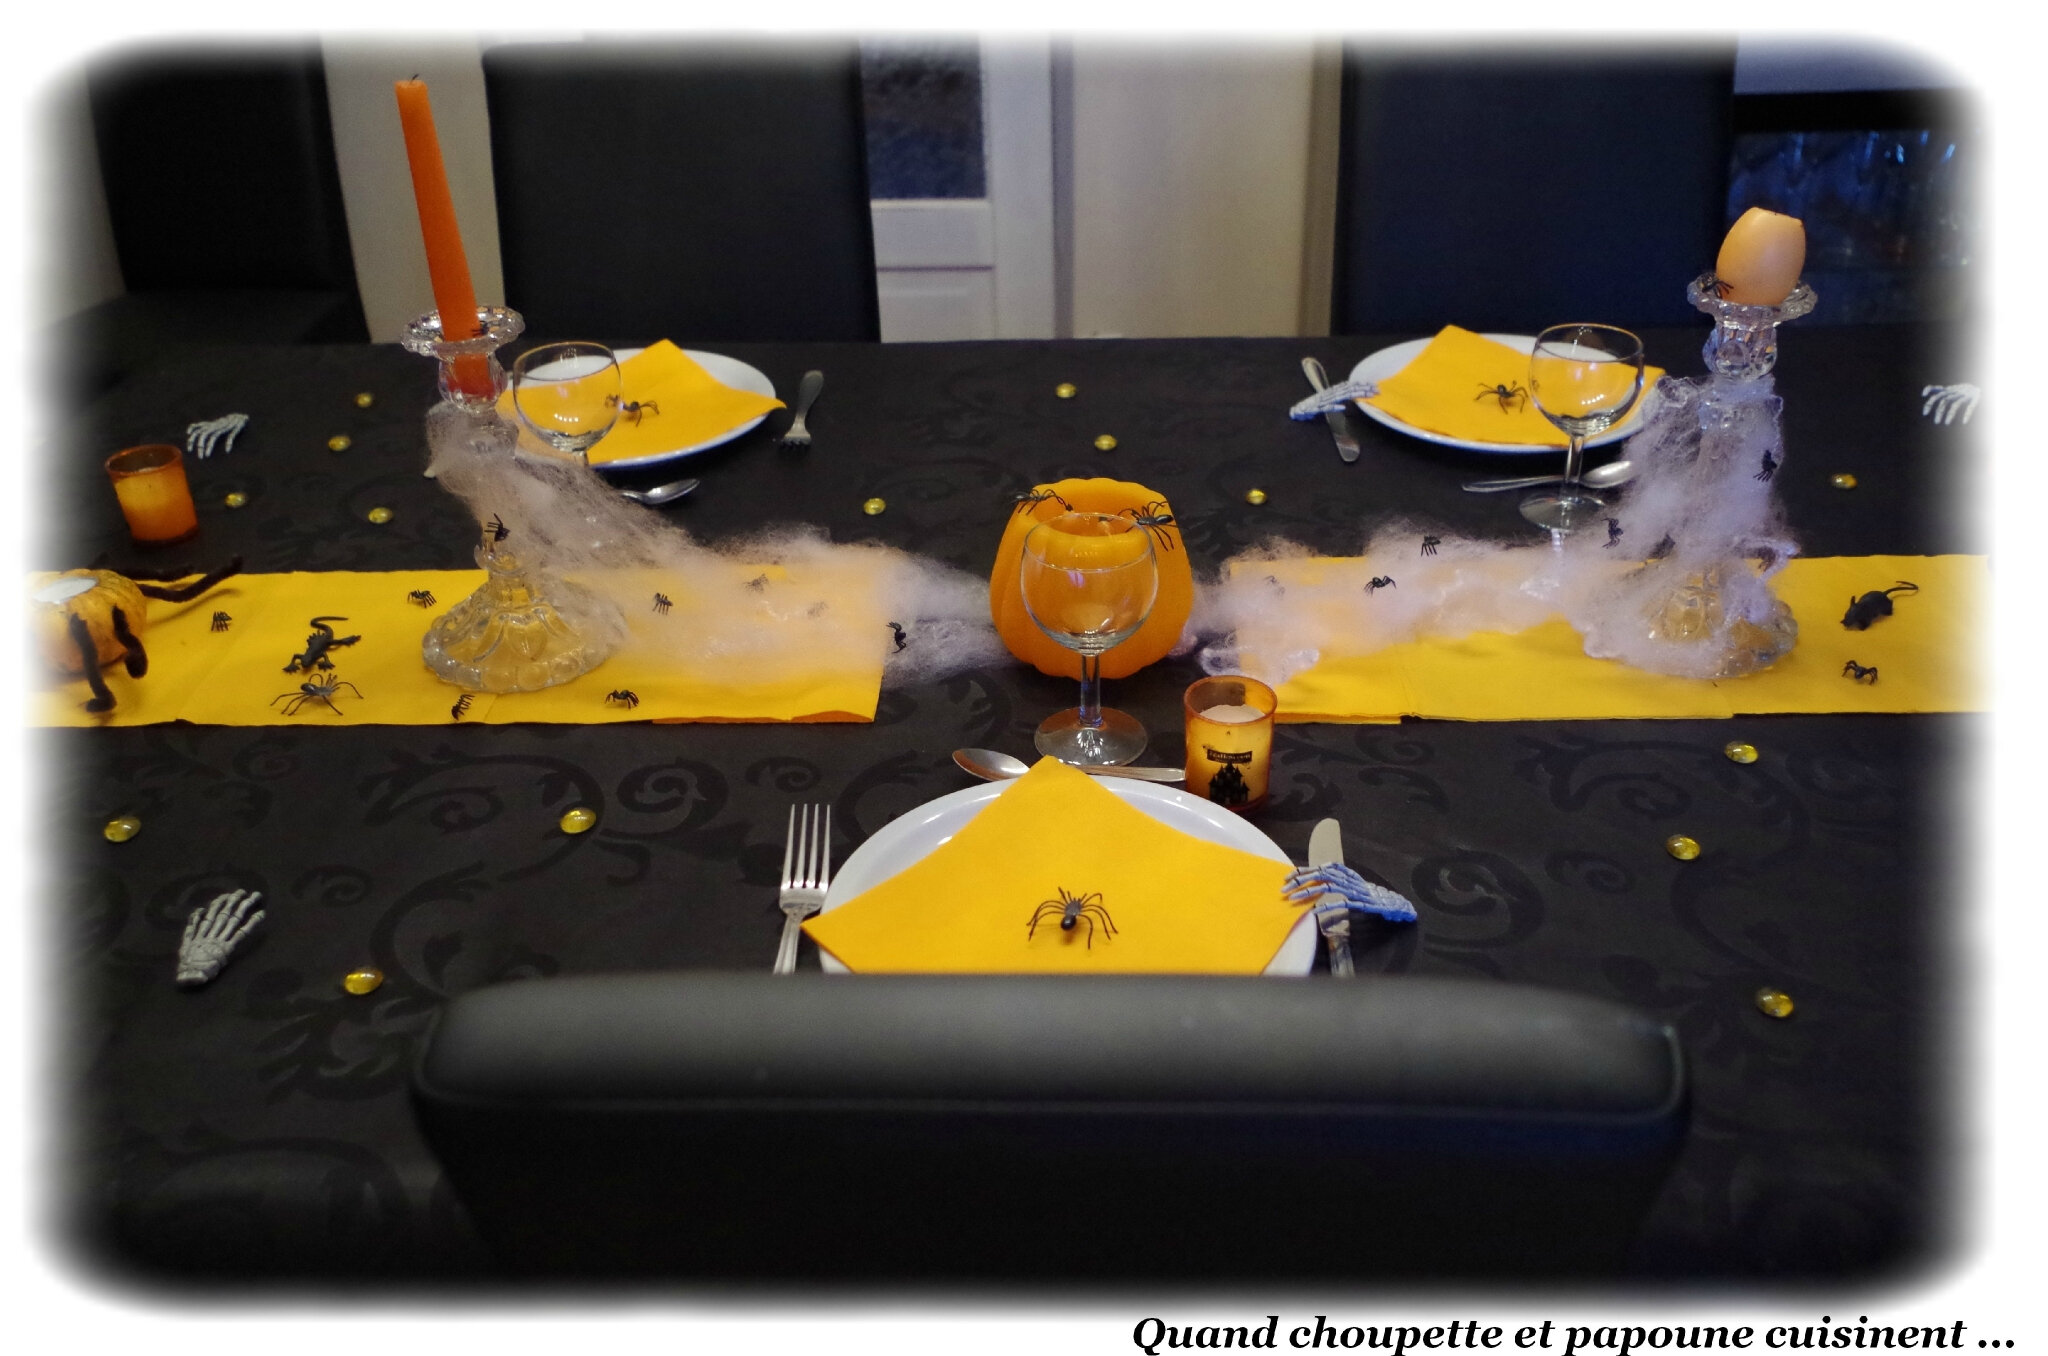 DECORATION DE TABLE POUR HALLOWEEN